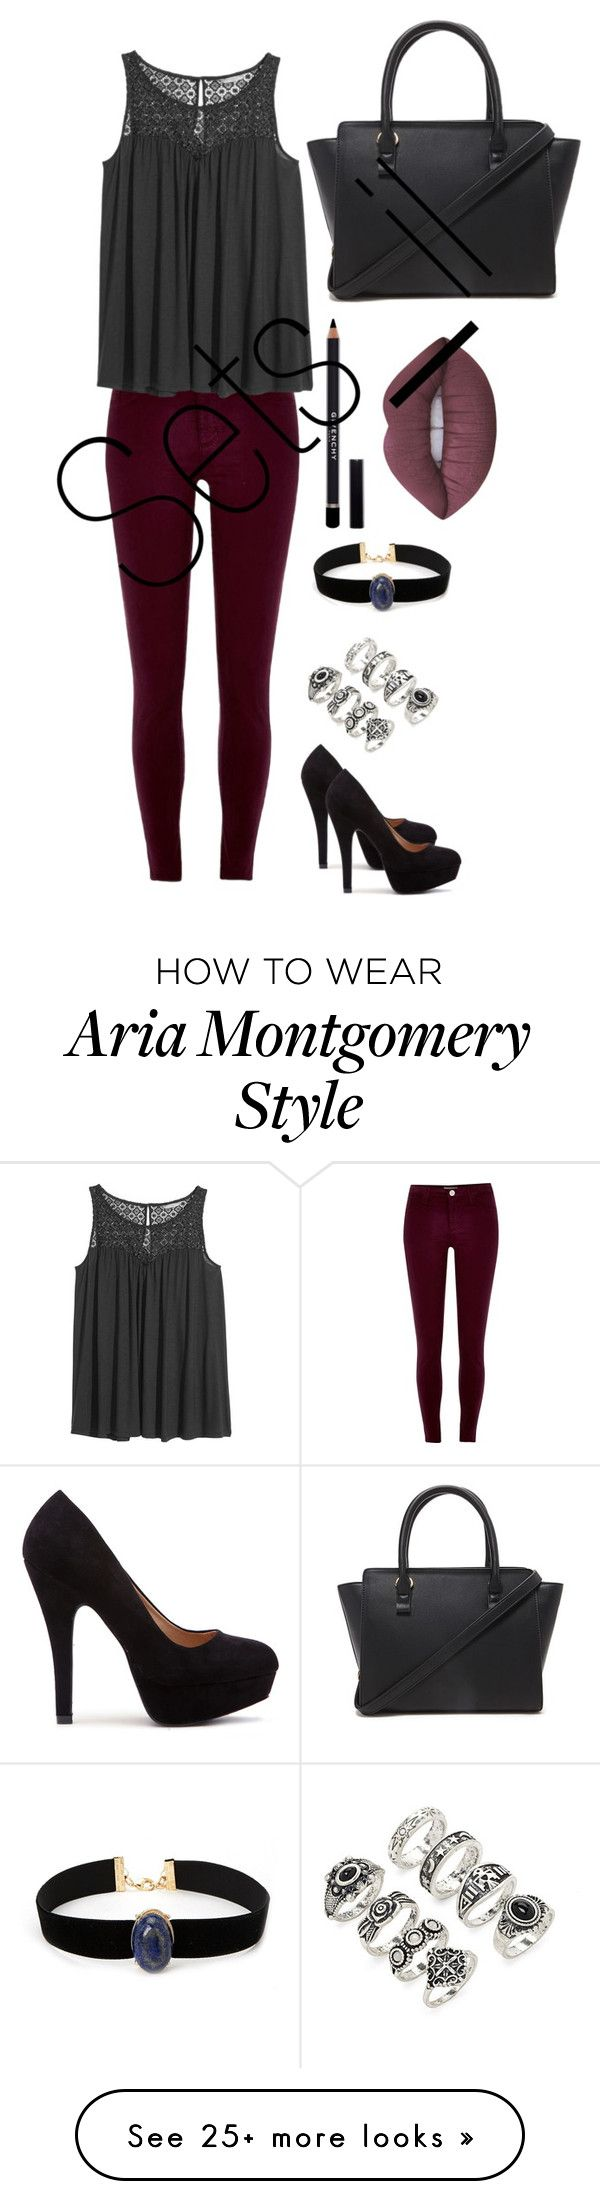 """Aria Montgomery inspired outfit"" by ellamendallas on Polyvore featuring River Island, H&M, Forever 21, Givenchy and Lime Crime"